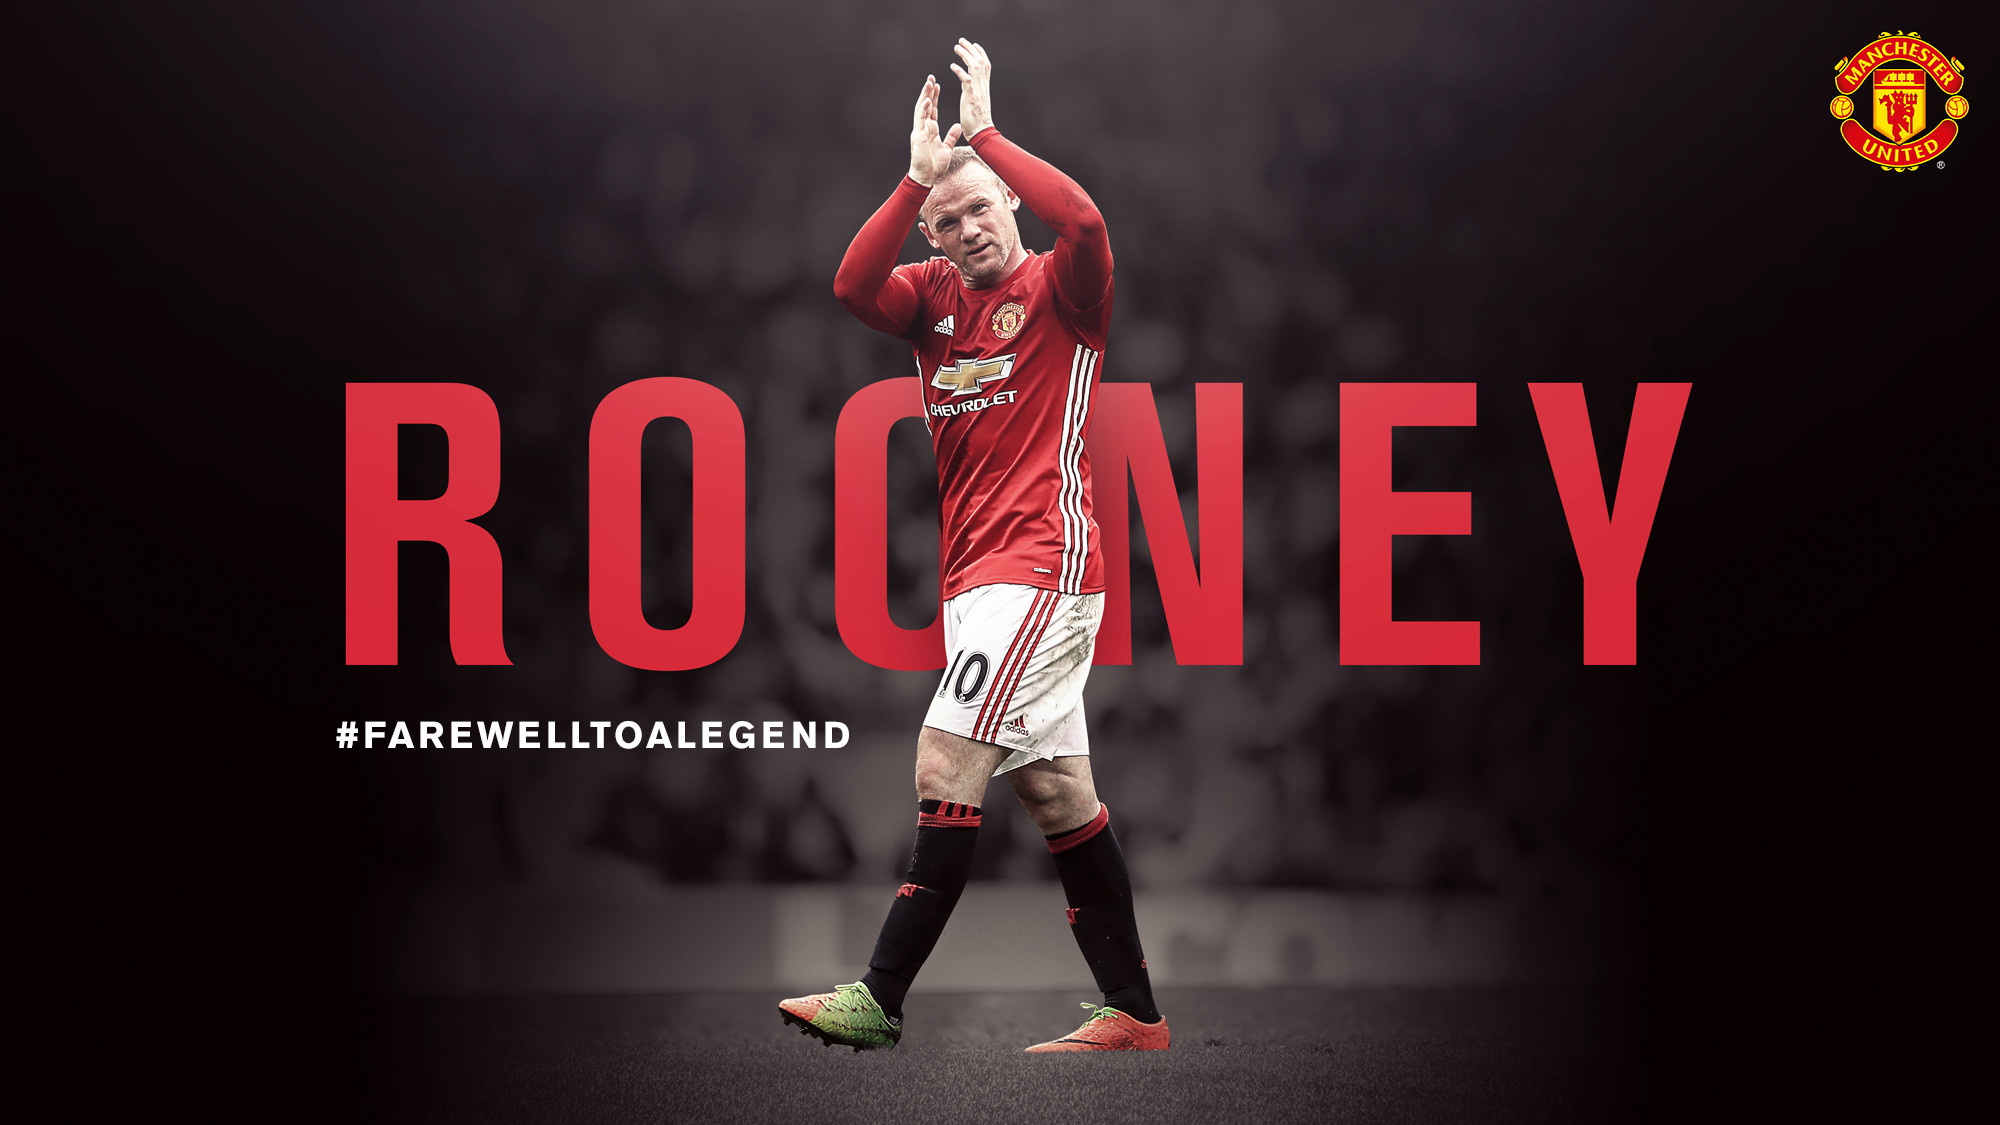 Man utd wallpaper 2018 77 images - Manchester united latest wallpapers hd ...